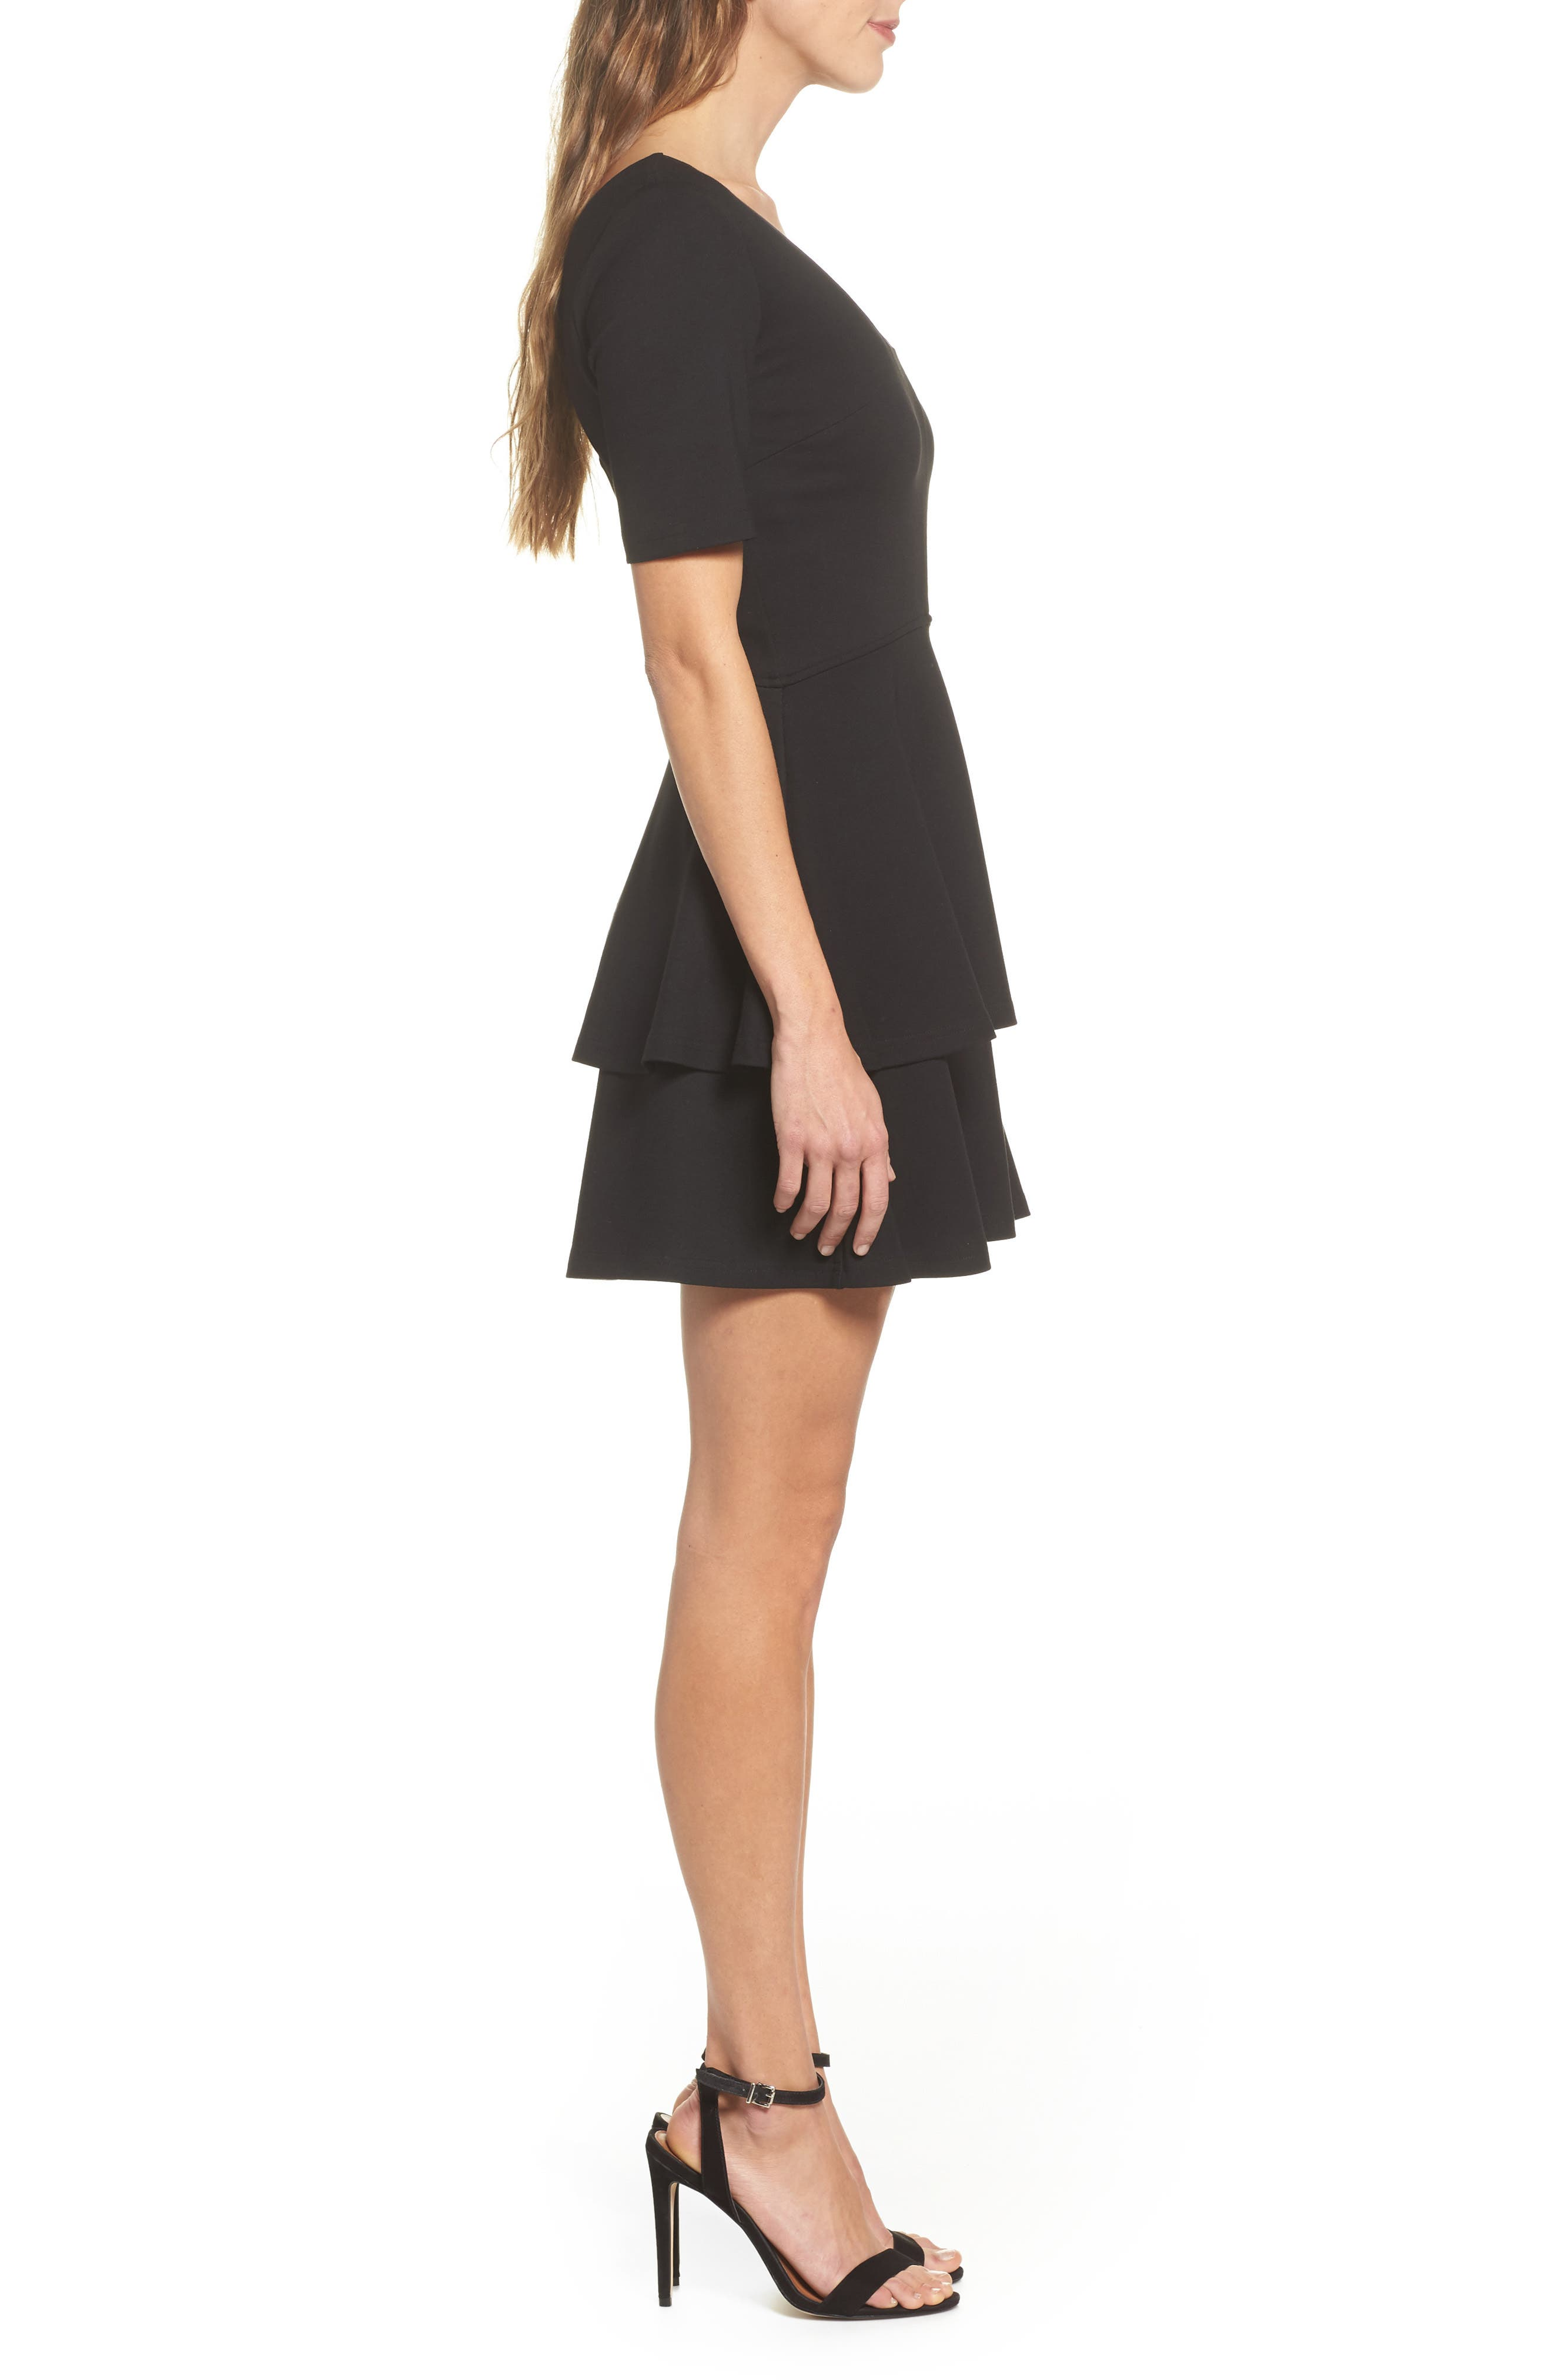 Isn't It Sweet Fit & Flare Dress,                             Alternate thumbnail 4, color,                             Black